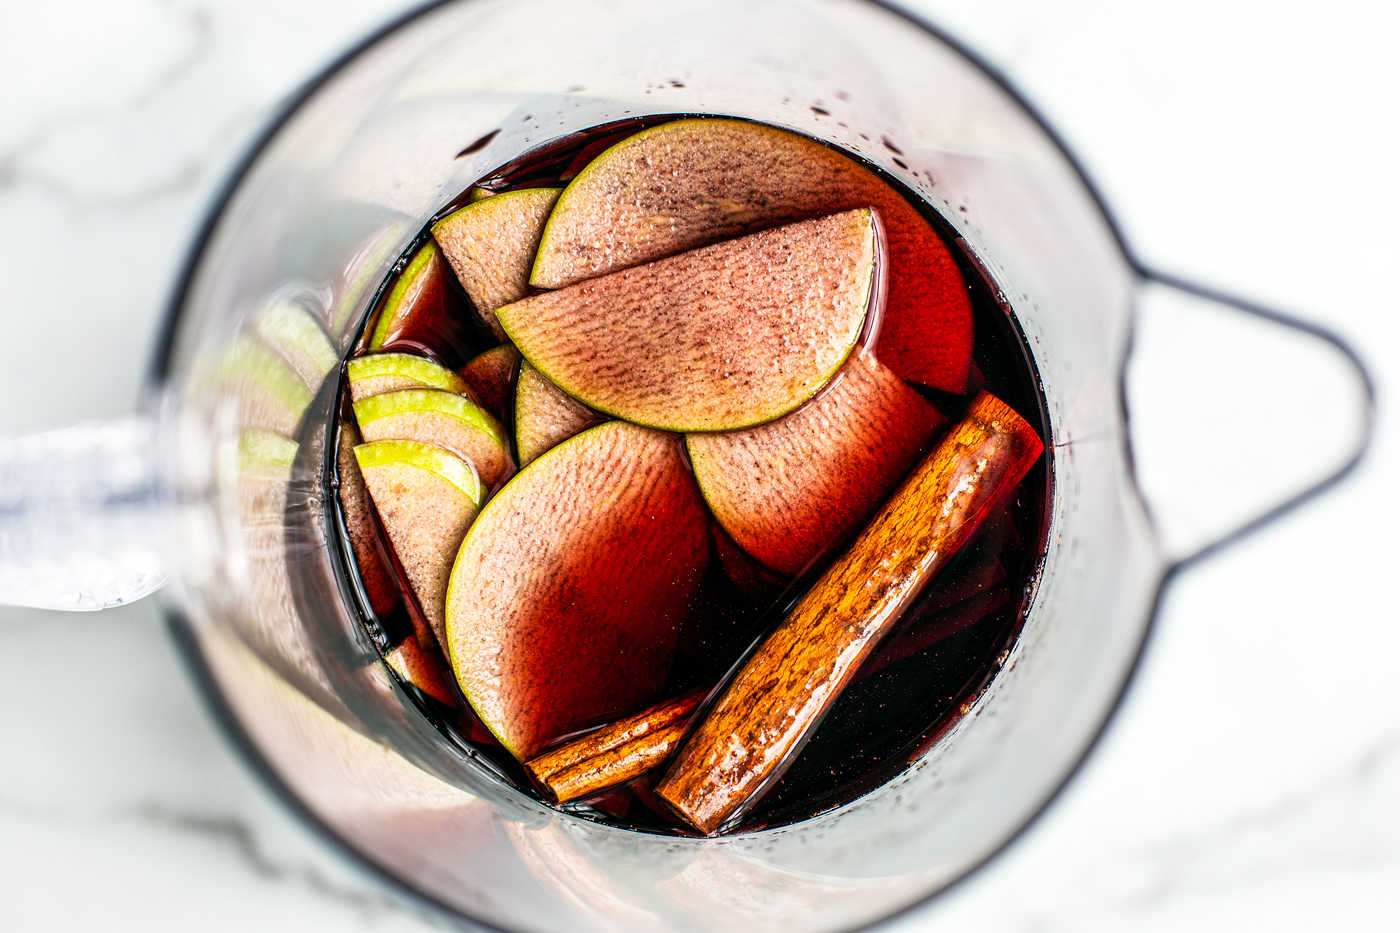 Overhead shot of pitcher full of red sangria, sliced green apples, and cinnamon sticks.